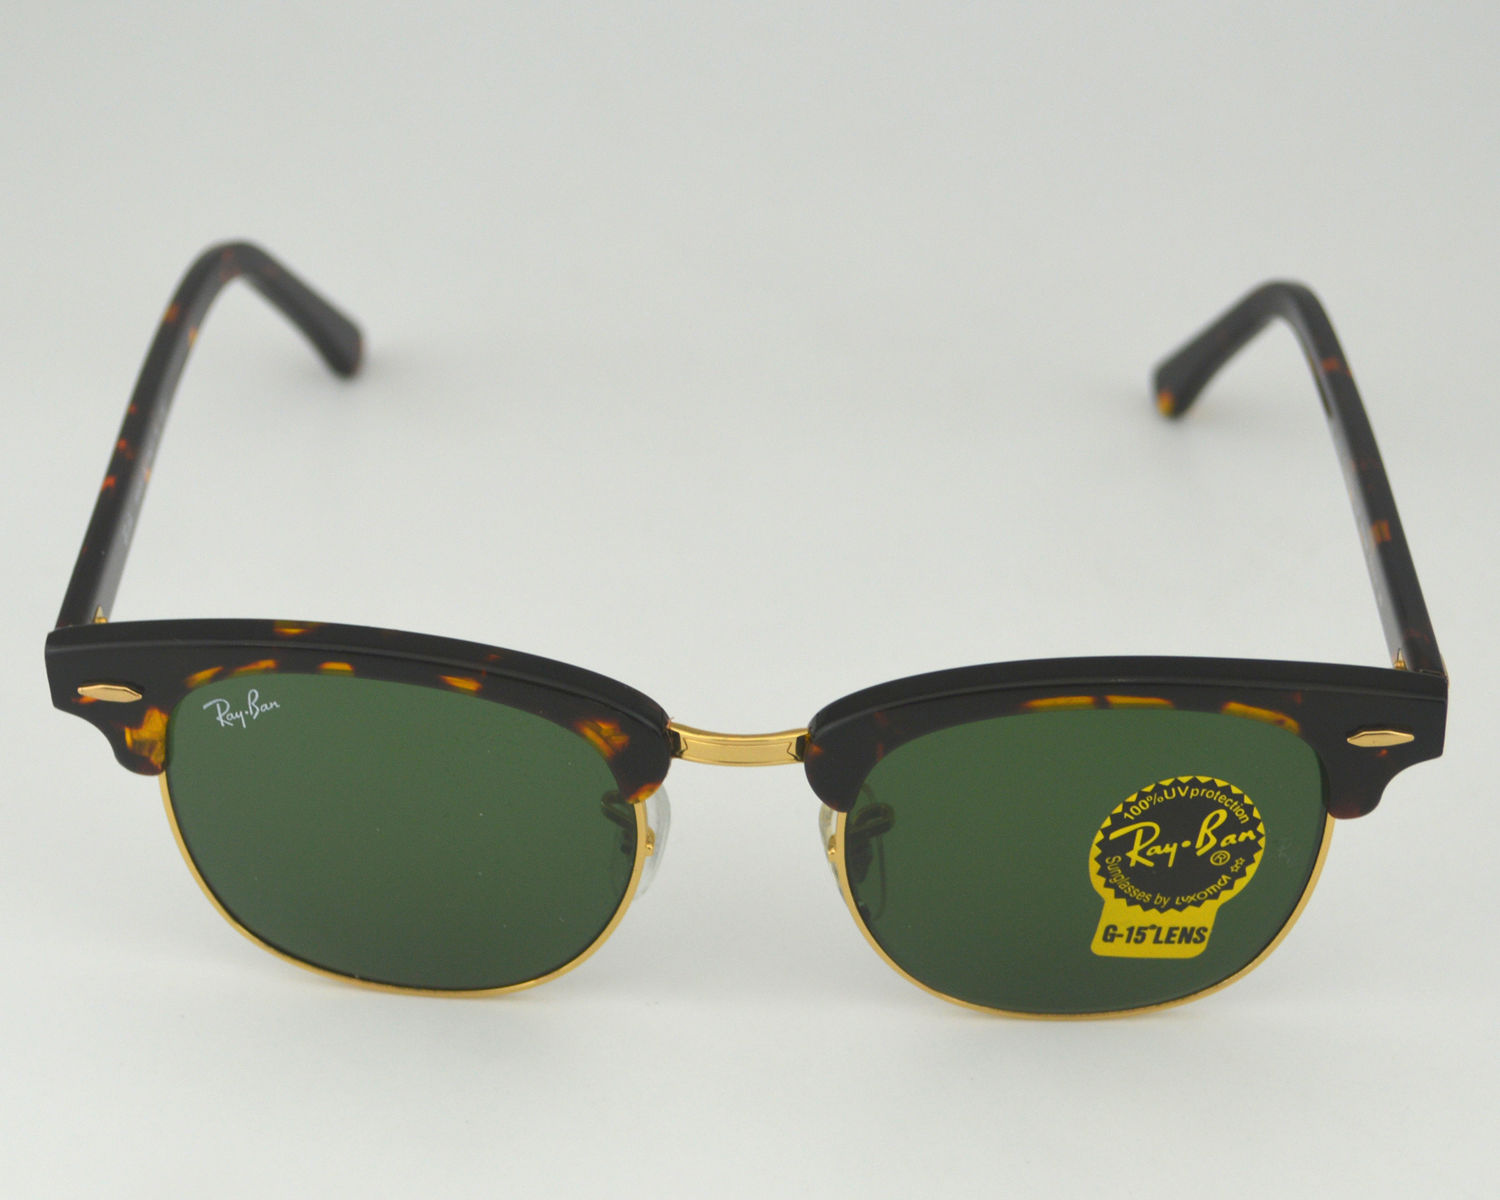 bd16b0c7fc Ray Ban RB 3016 Clubmaster Classic W0366 Tortoise Frame Green Classic G-15  Lenses Unisex Sunglasses 51mm